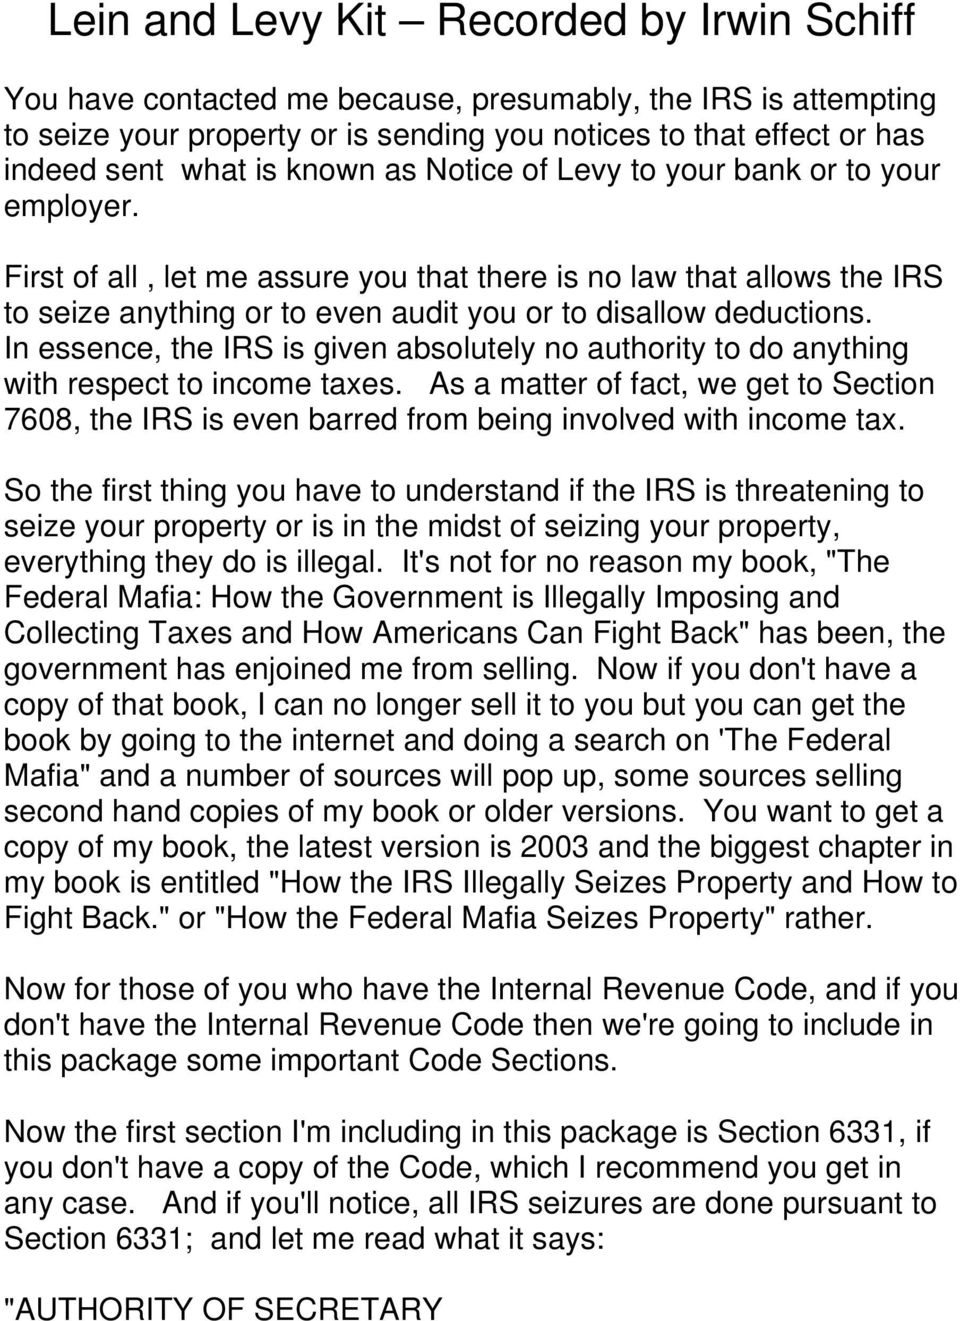 In essence, the IRS is given absolutely no authority to do anything with respect to income taxes.